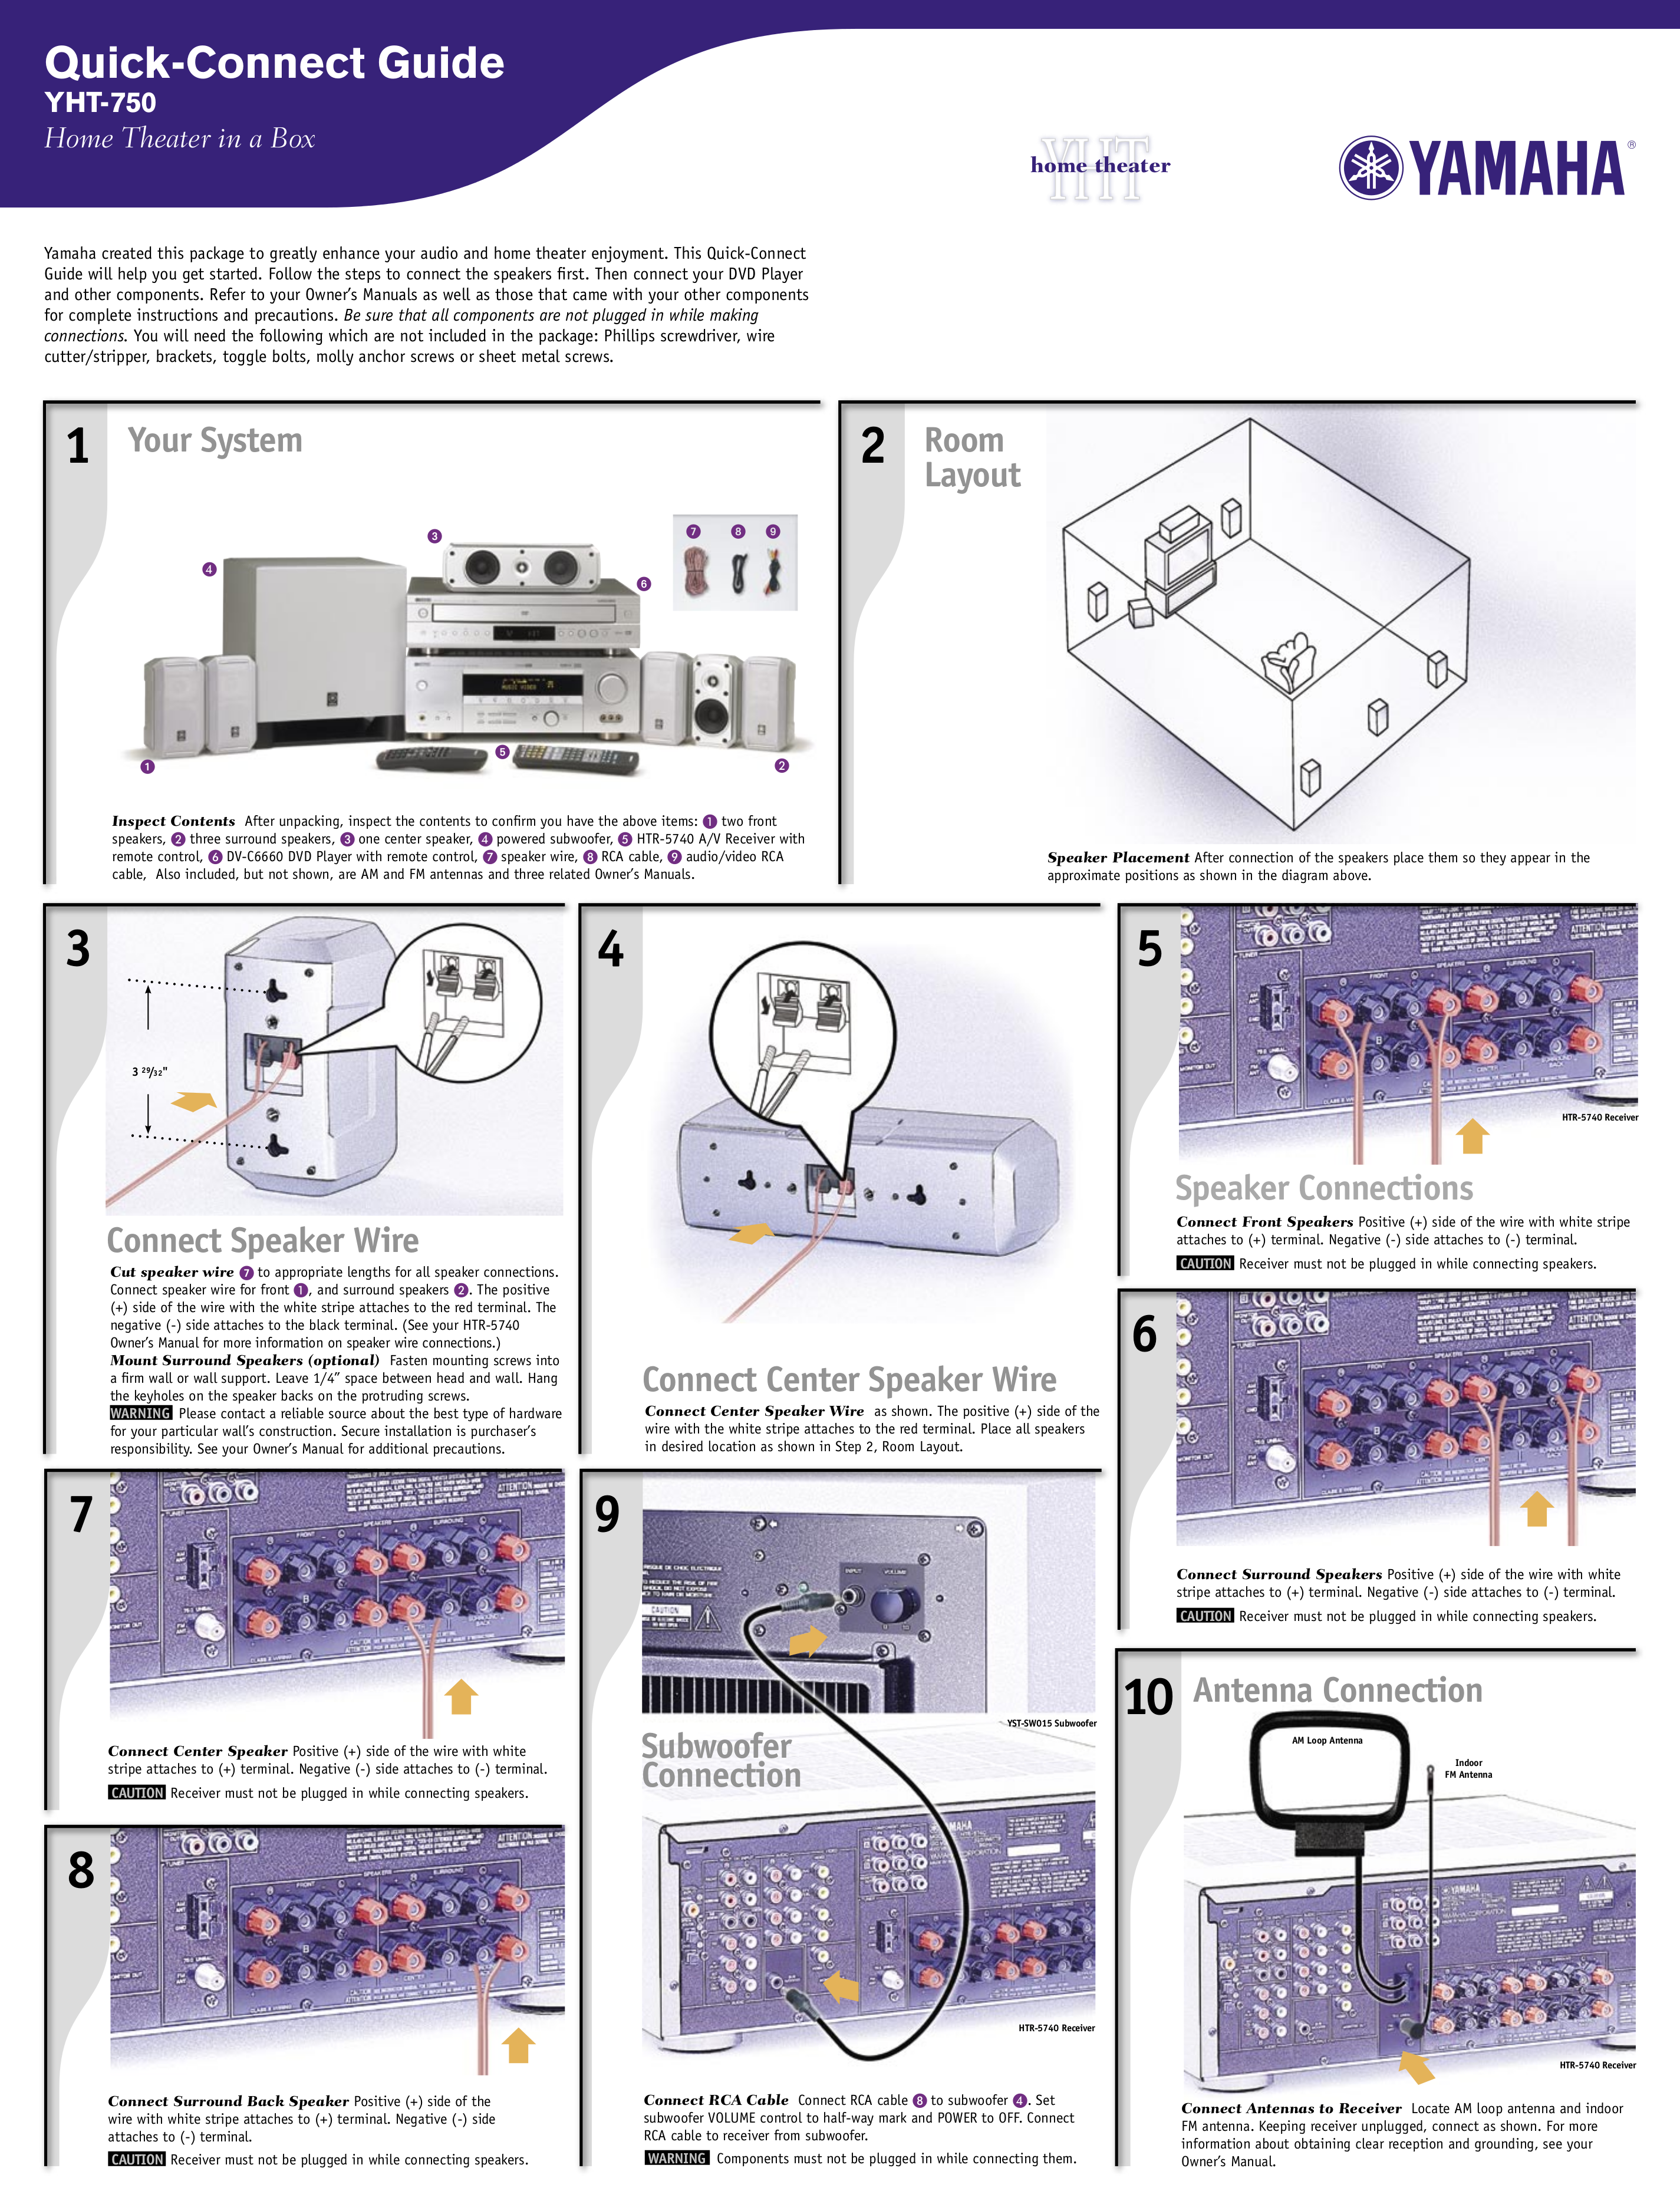 Download free pdf for Yamaha YHT-17 Home Theater manual on